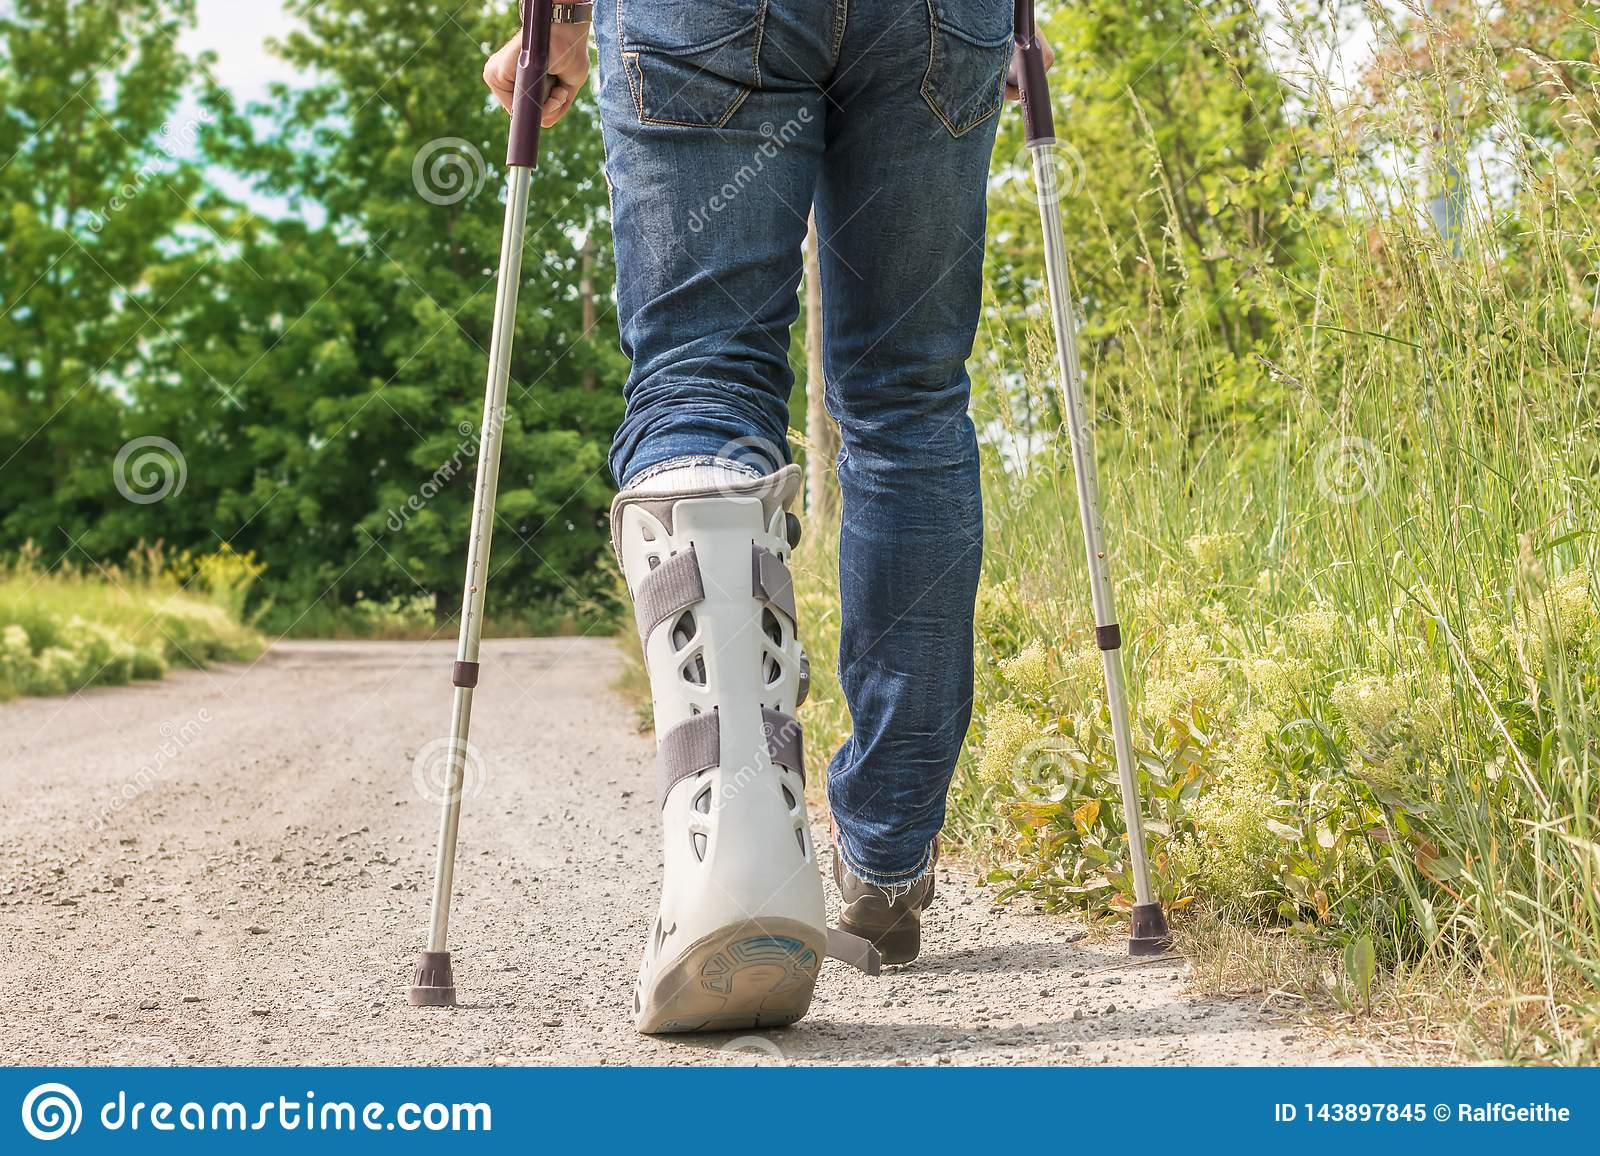 Mobility through medical technology using the example of an orthopedic orthosis on the lower leg